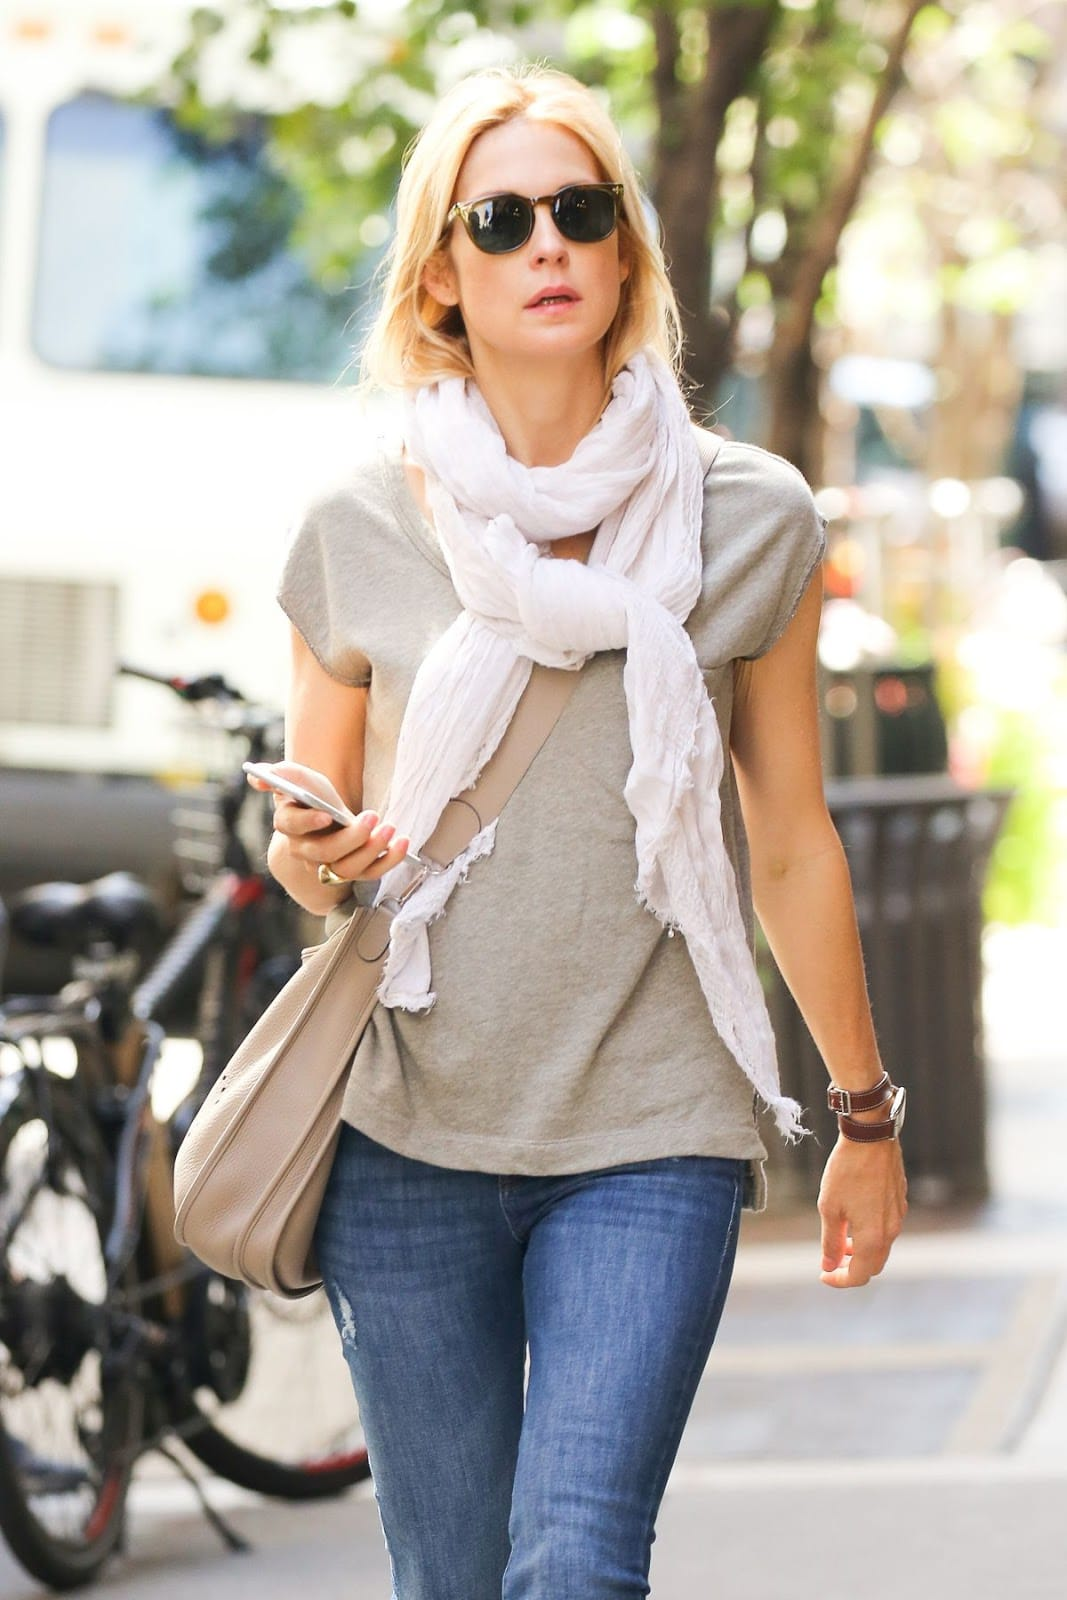 kelly rutherford out and about in new york photos 4u 2